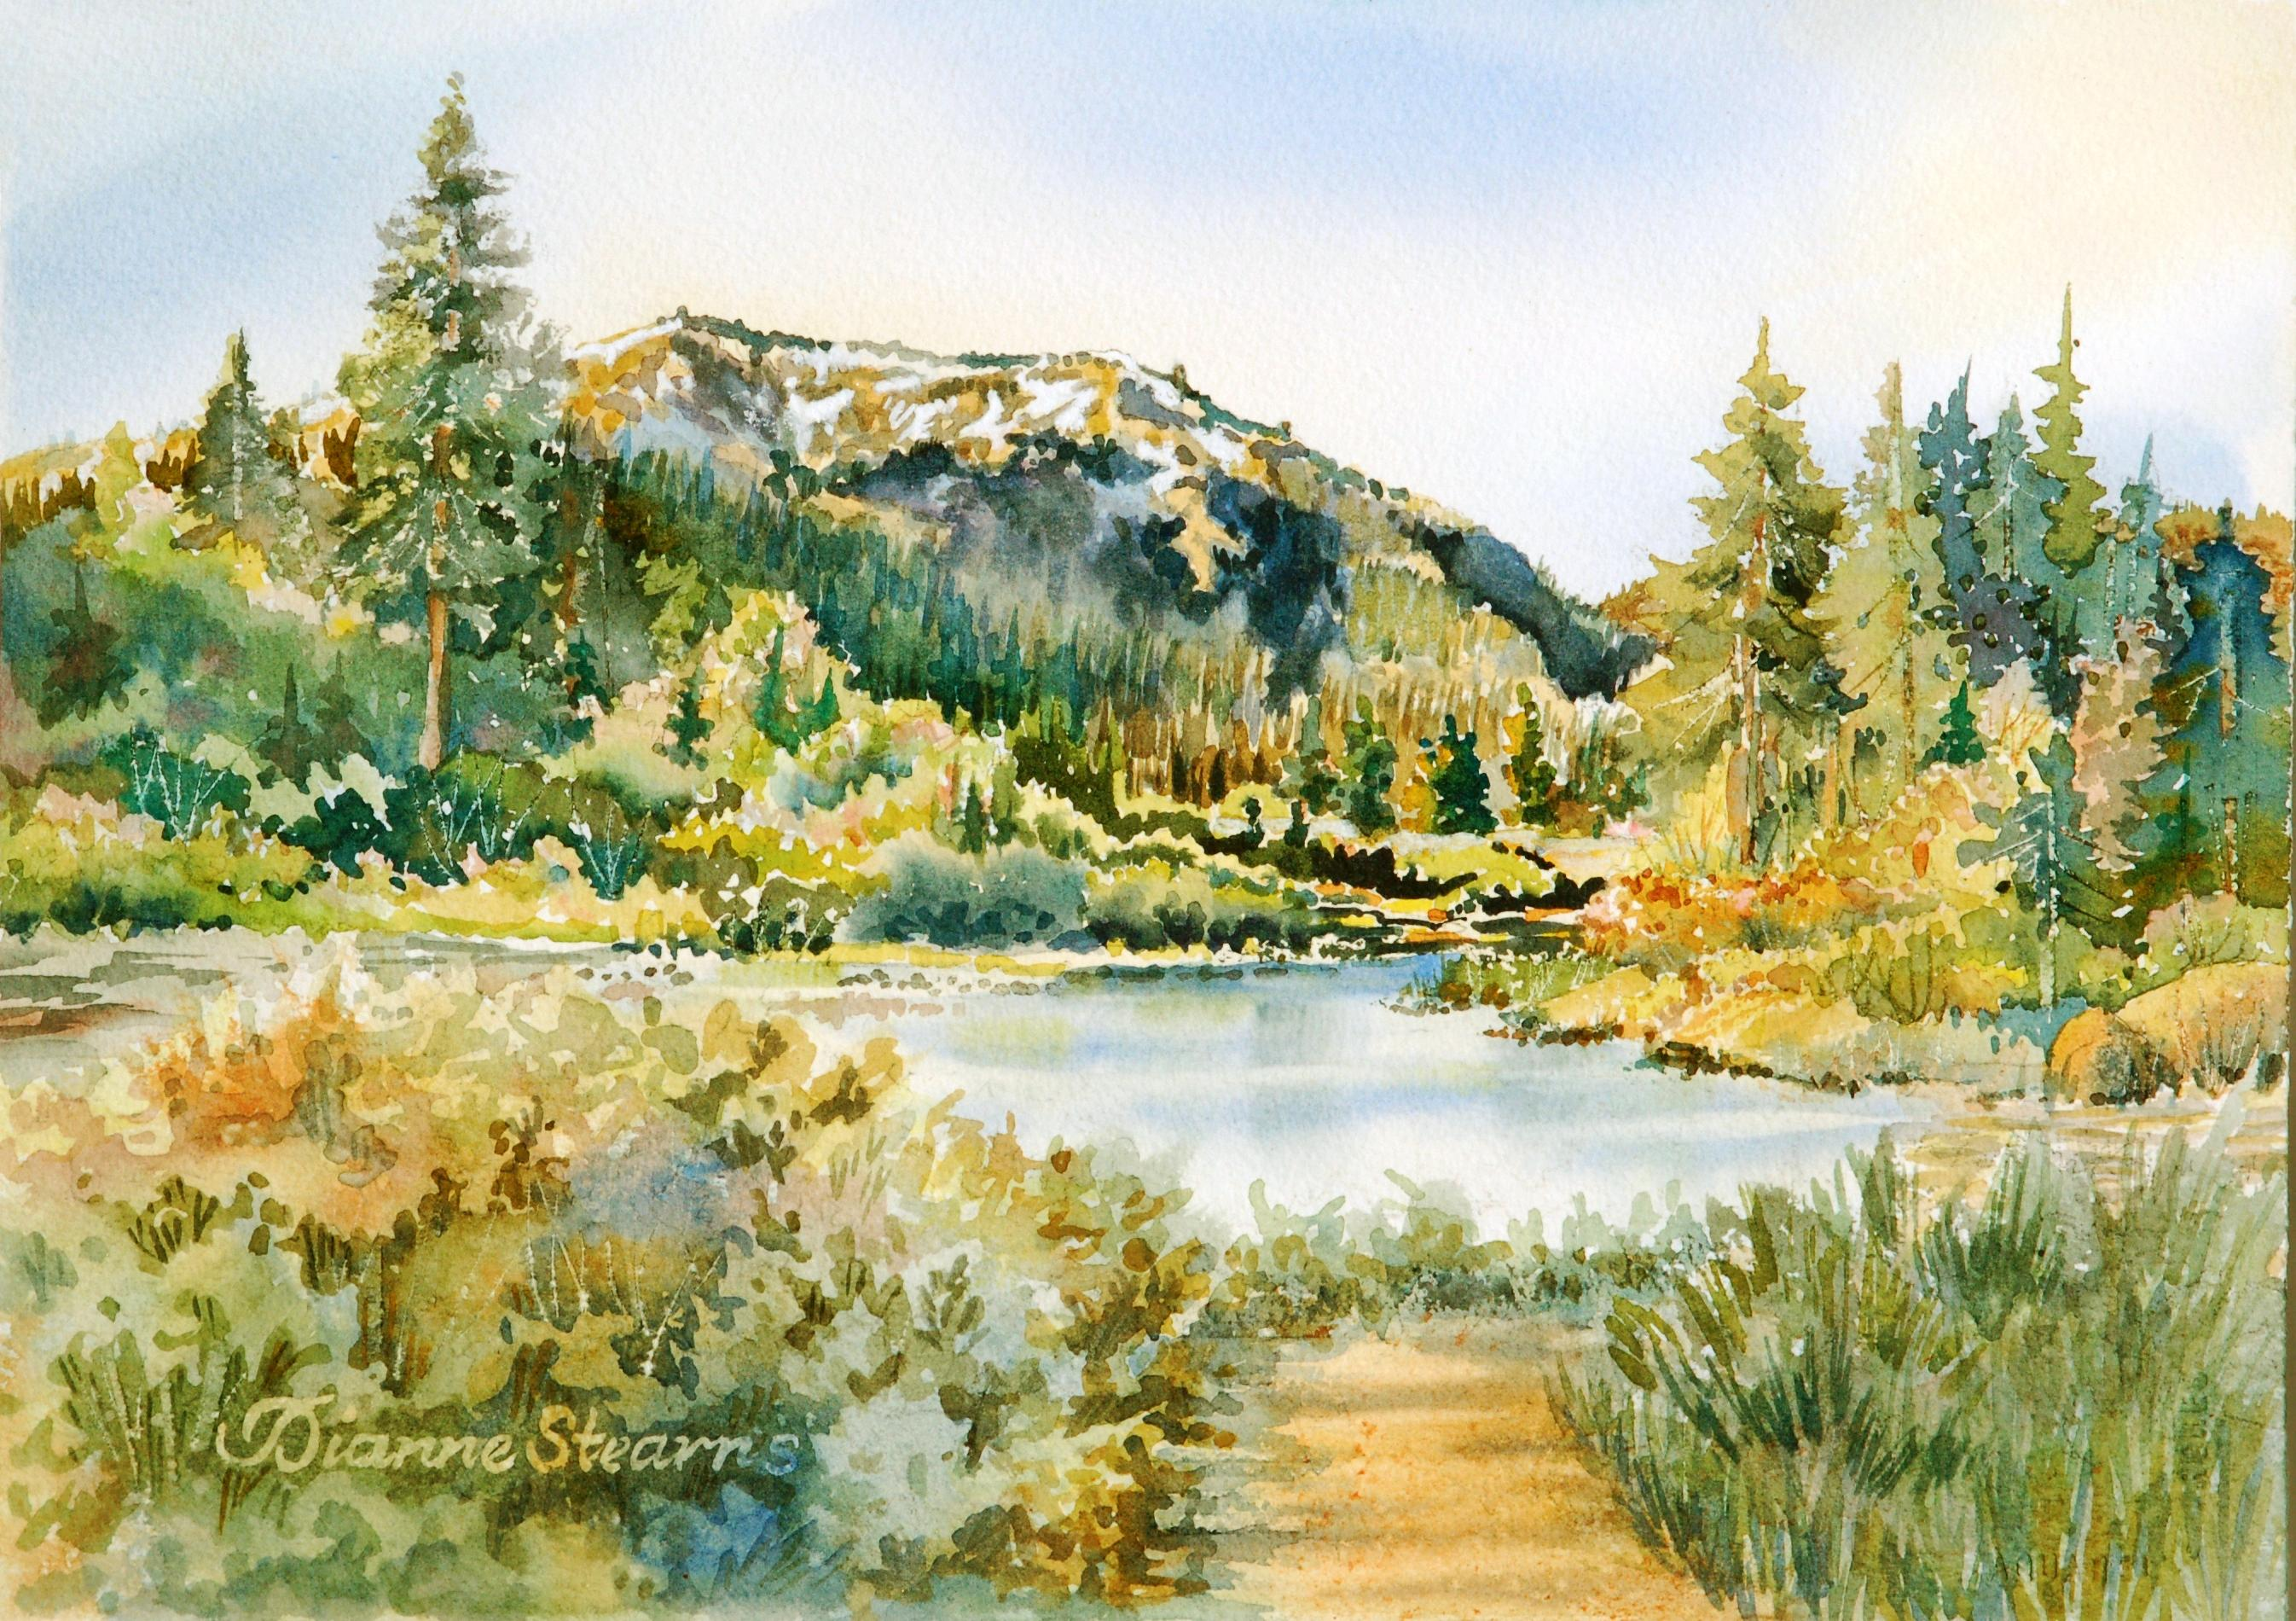 Donated copy of Watercolor painted by Stearns during